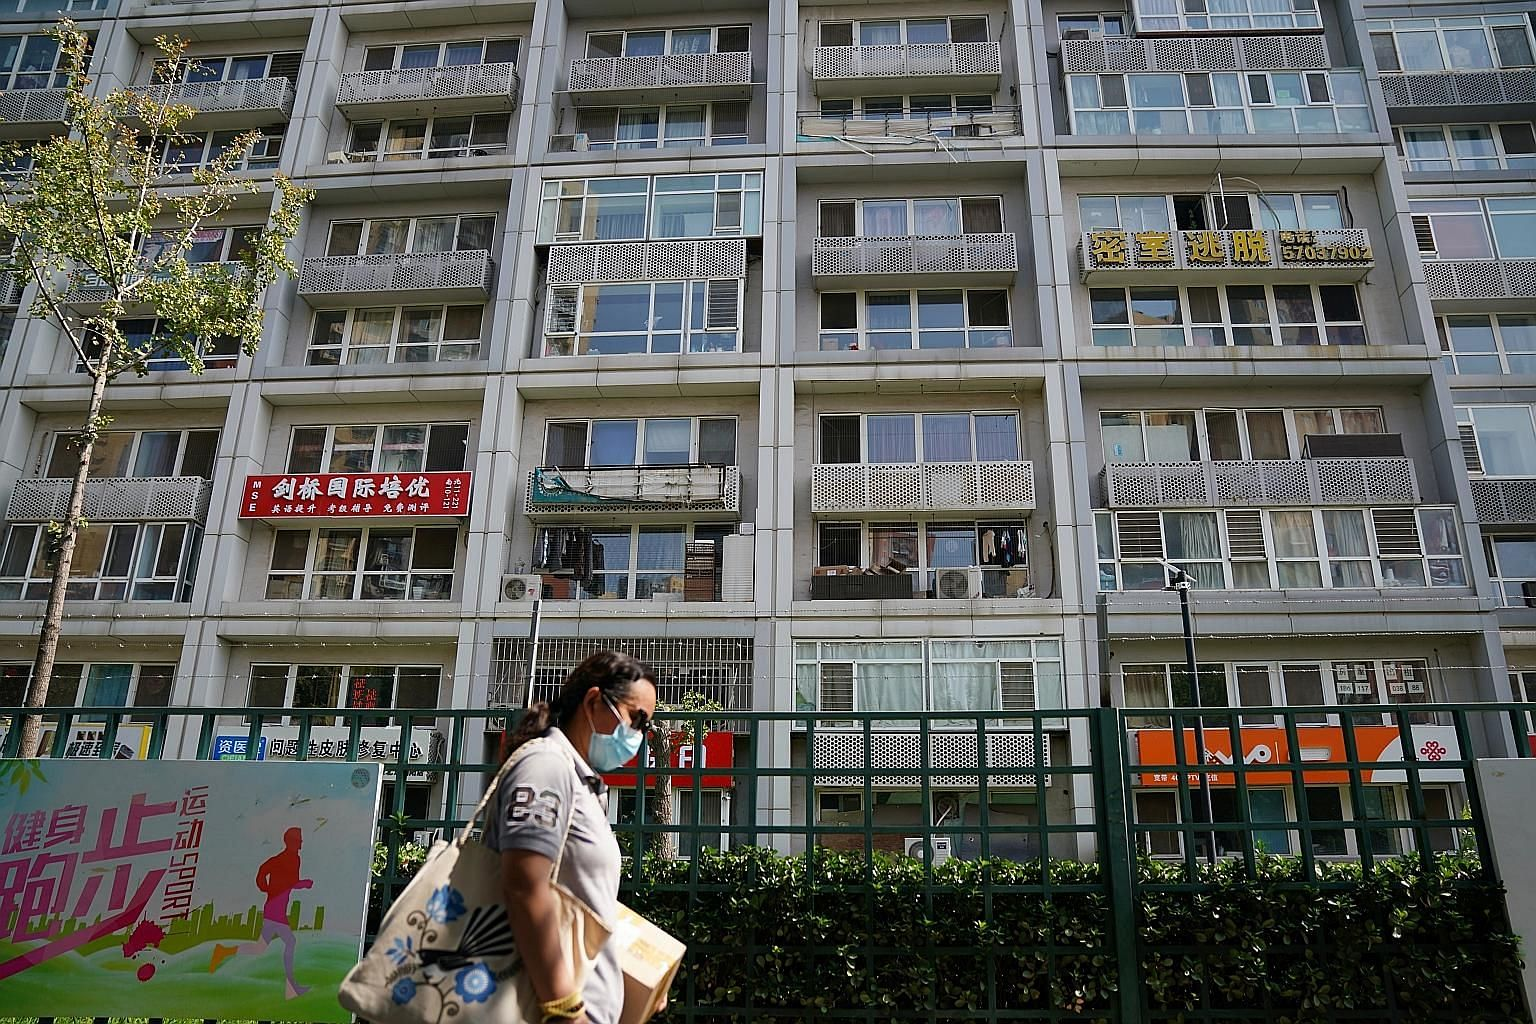 A residential compound in Beijing, where rental transactions in the first half of this year were down 23.1 per cent compared with the same period last year, according to home rental company Ilovemyhome. Several agents The Straits Times spoke to said